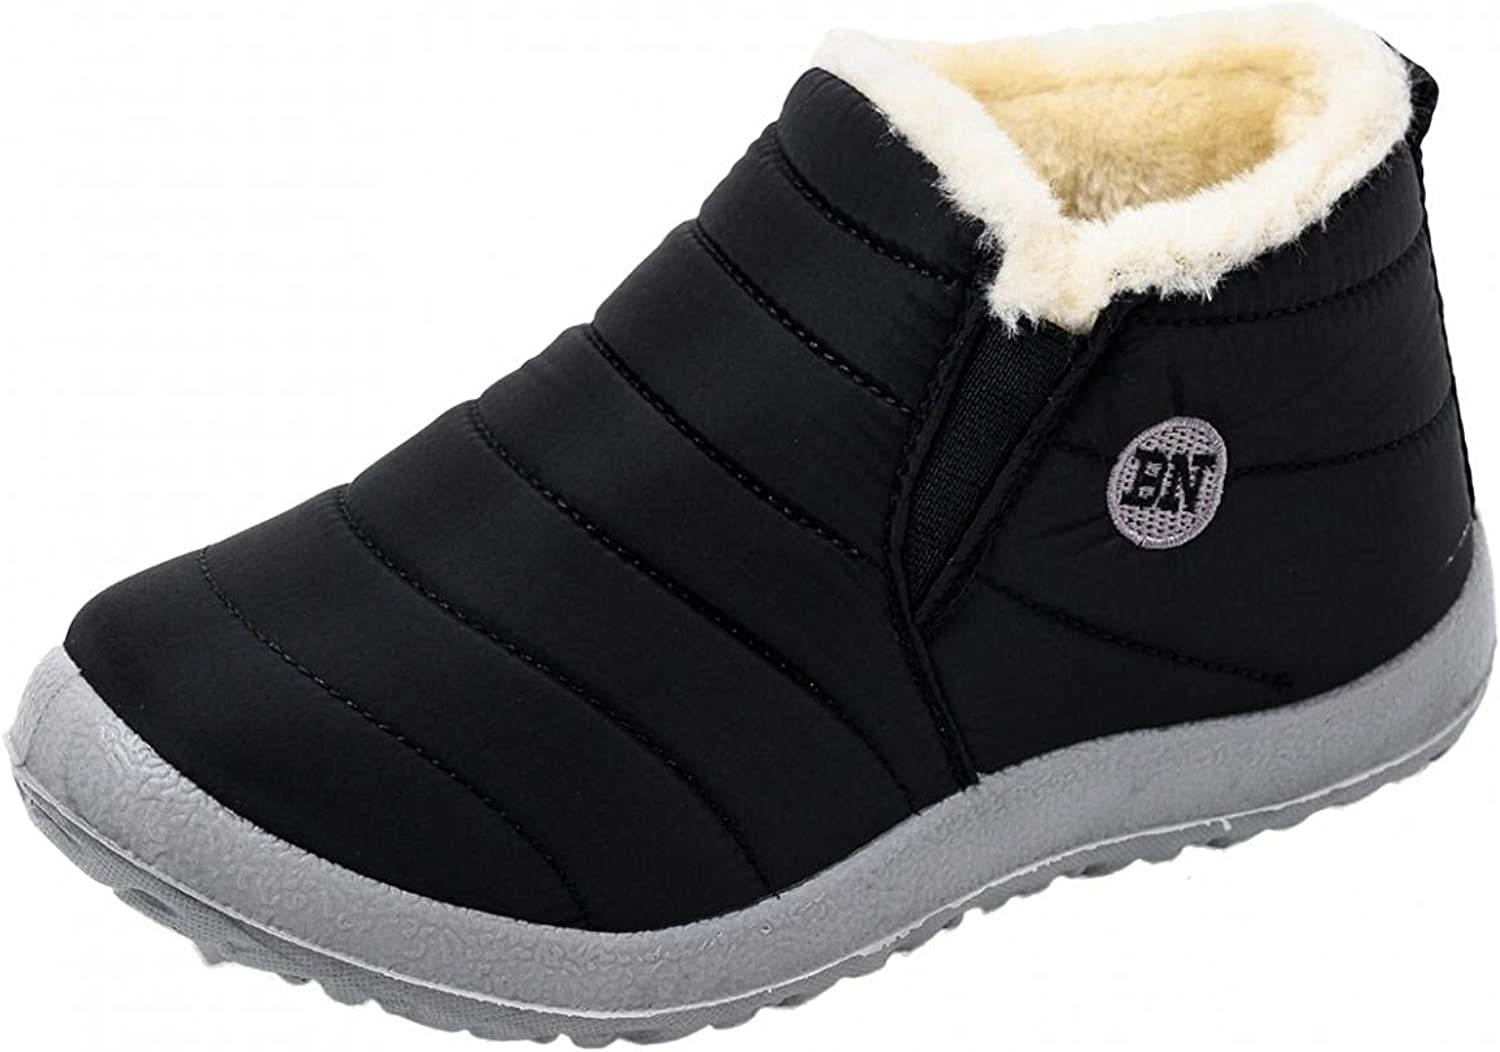 Gyouanime Shoes Winter Outdoor Snow Boots Non-Slip Plus Velvet F